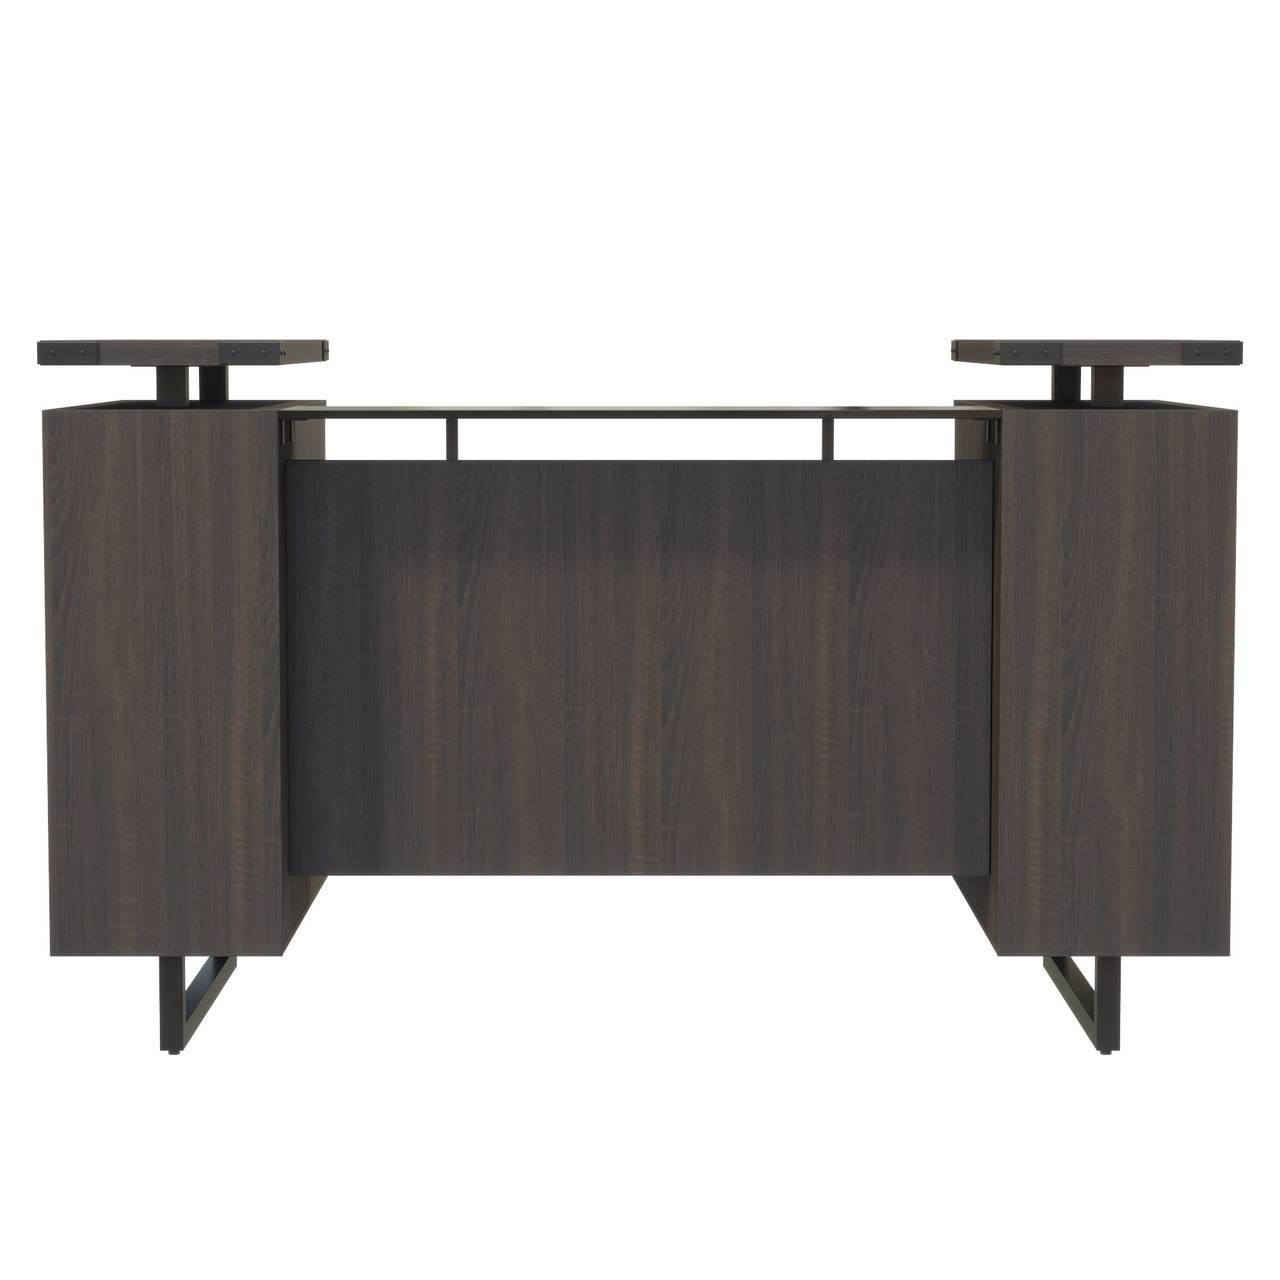 mirella southern tobacco reception desk front view